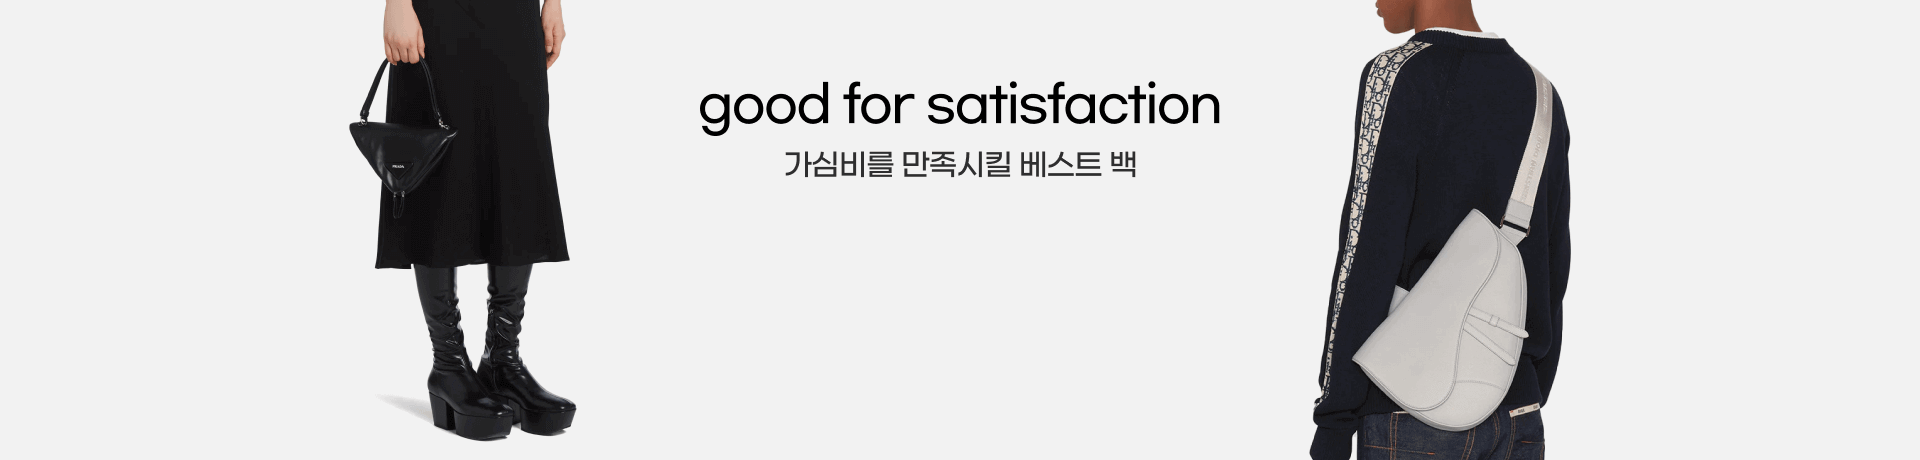 210927_sy_good-for-satisfaction_pc_f2f2f2